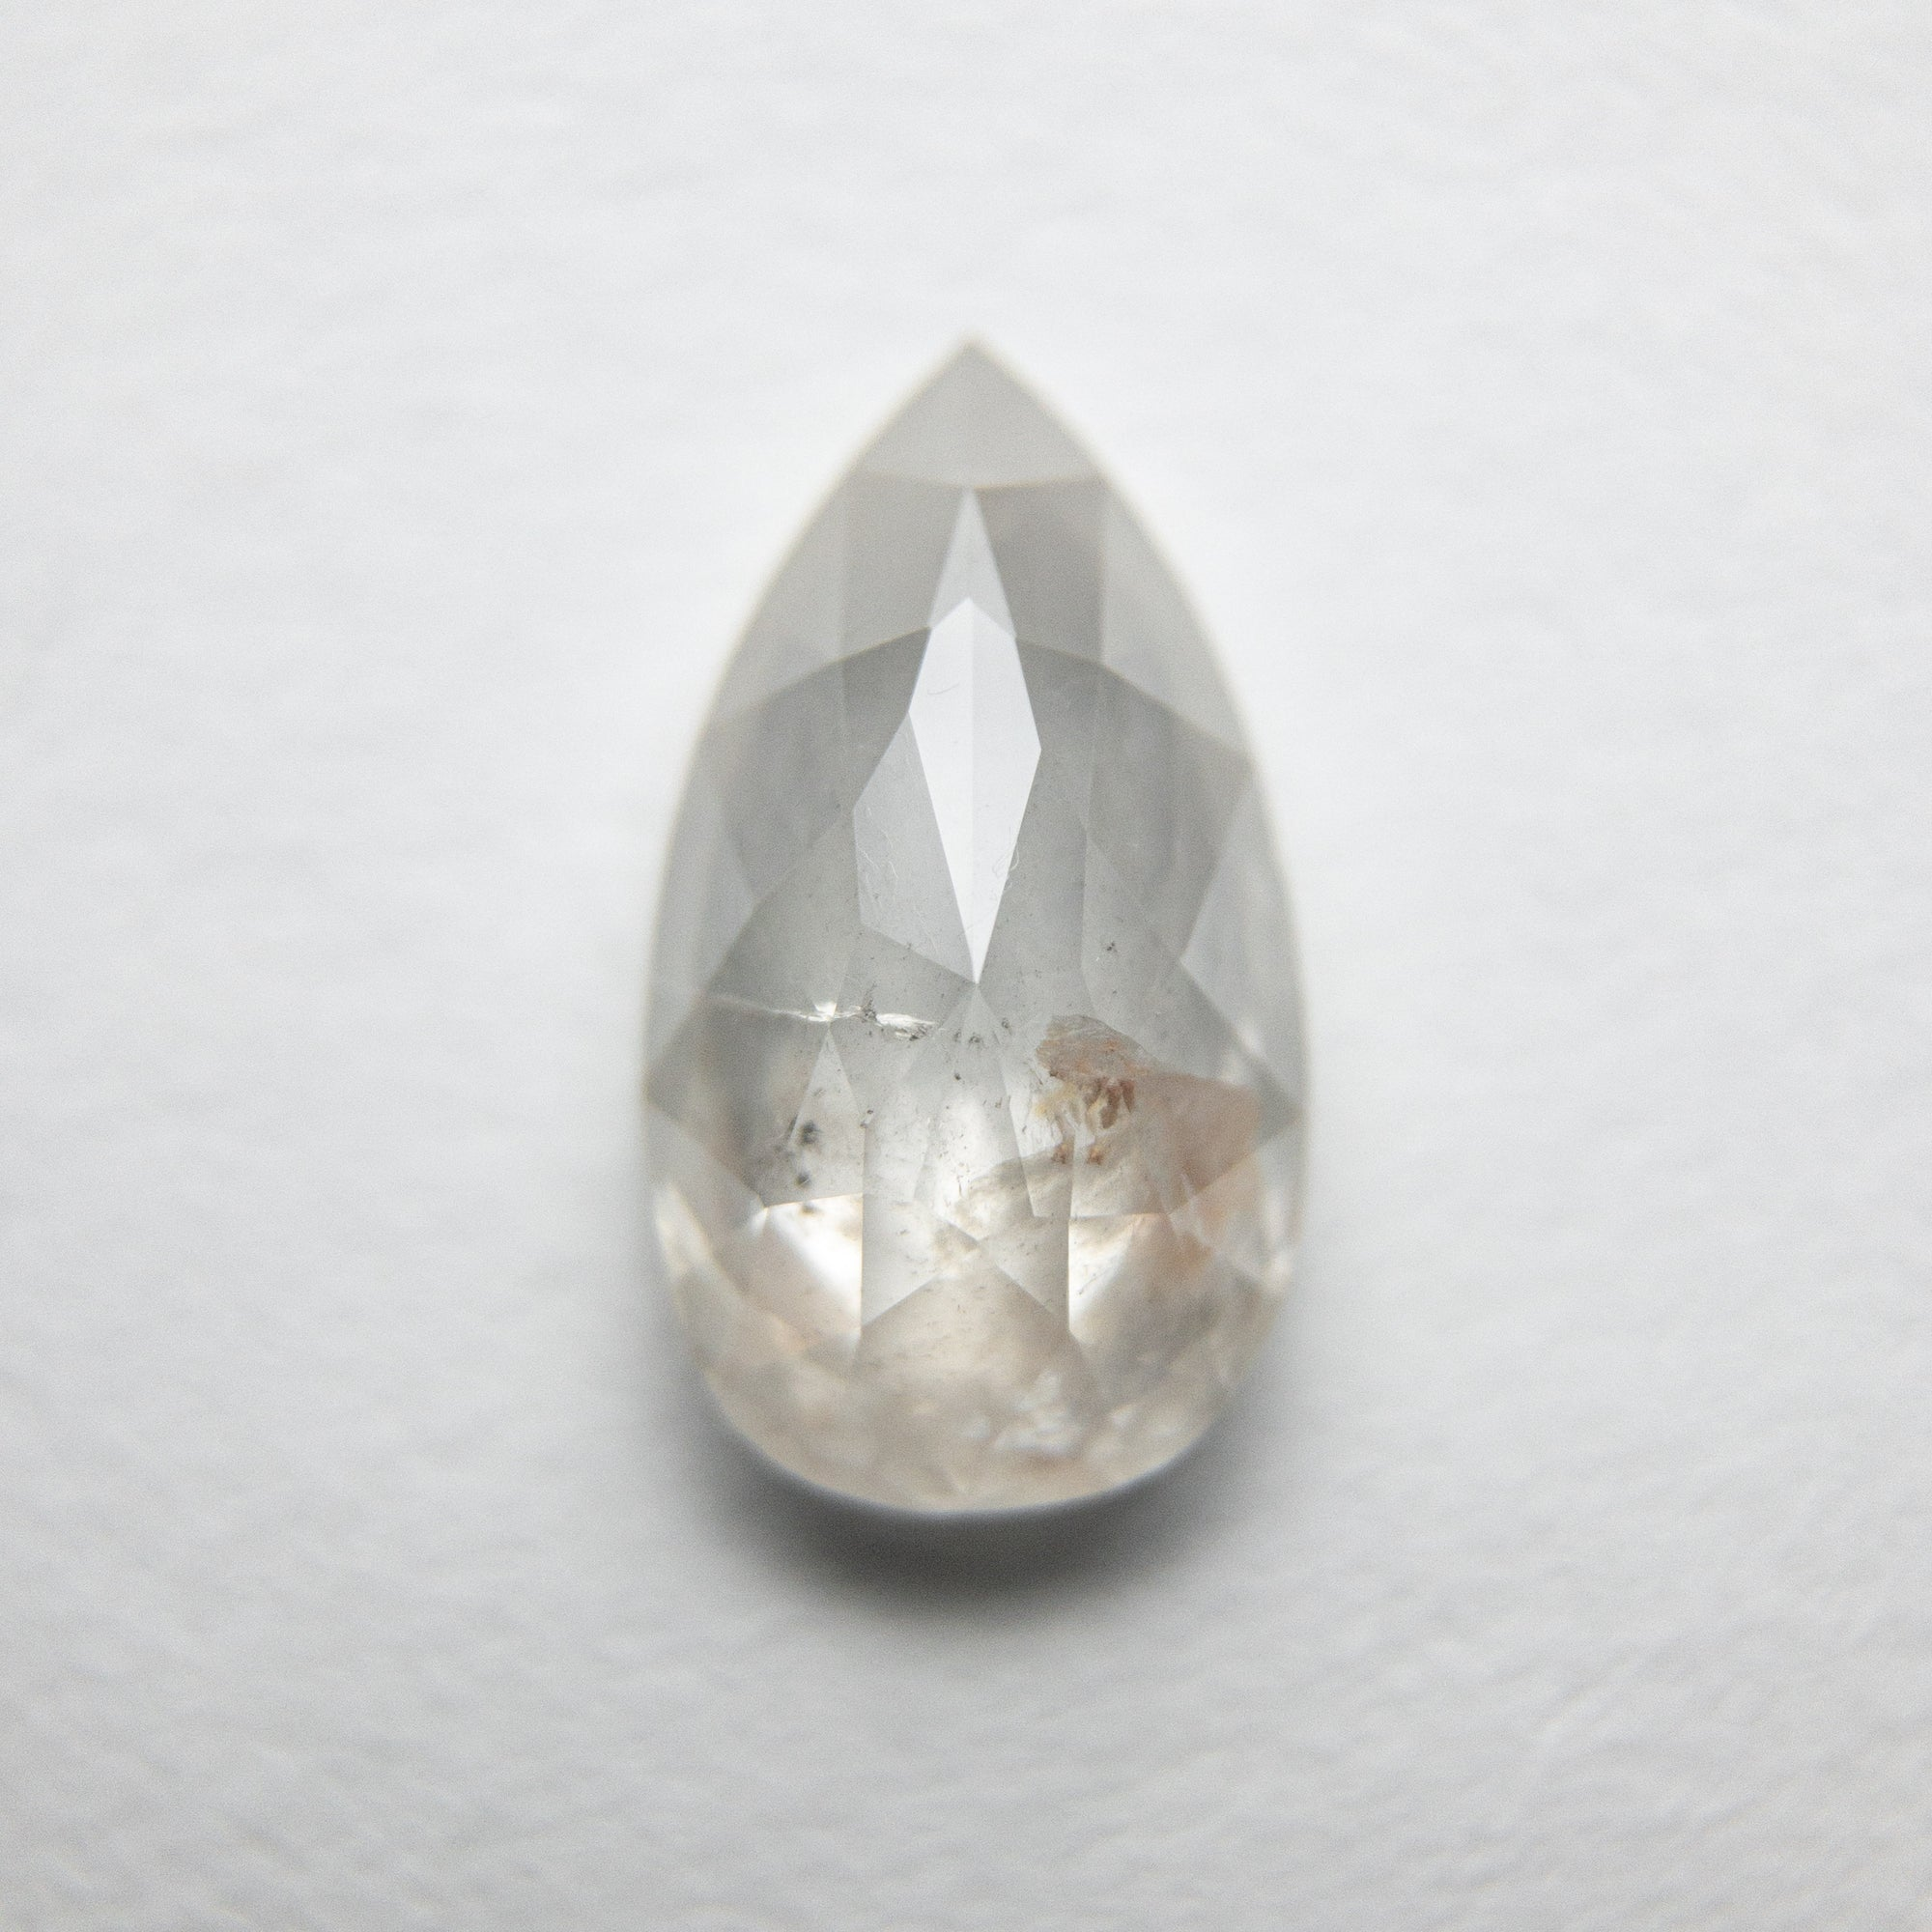 1.36ct 10.01x5.74x3.10mm Pear Double Cut 18386-18